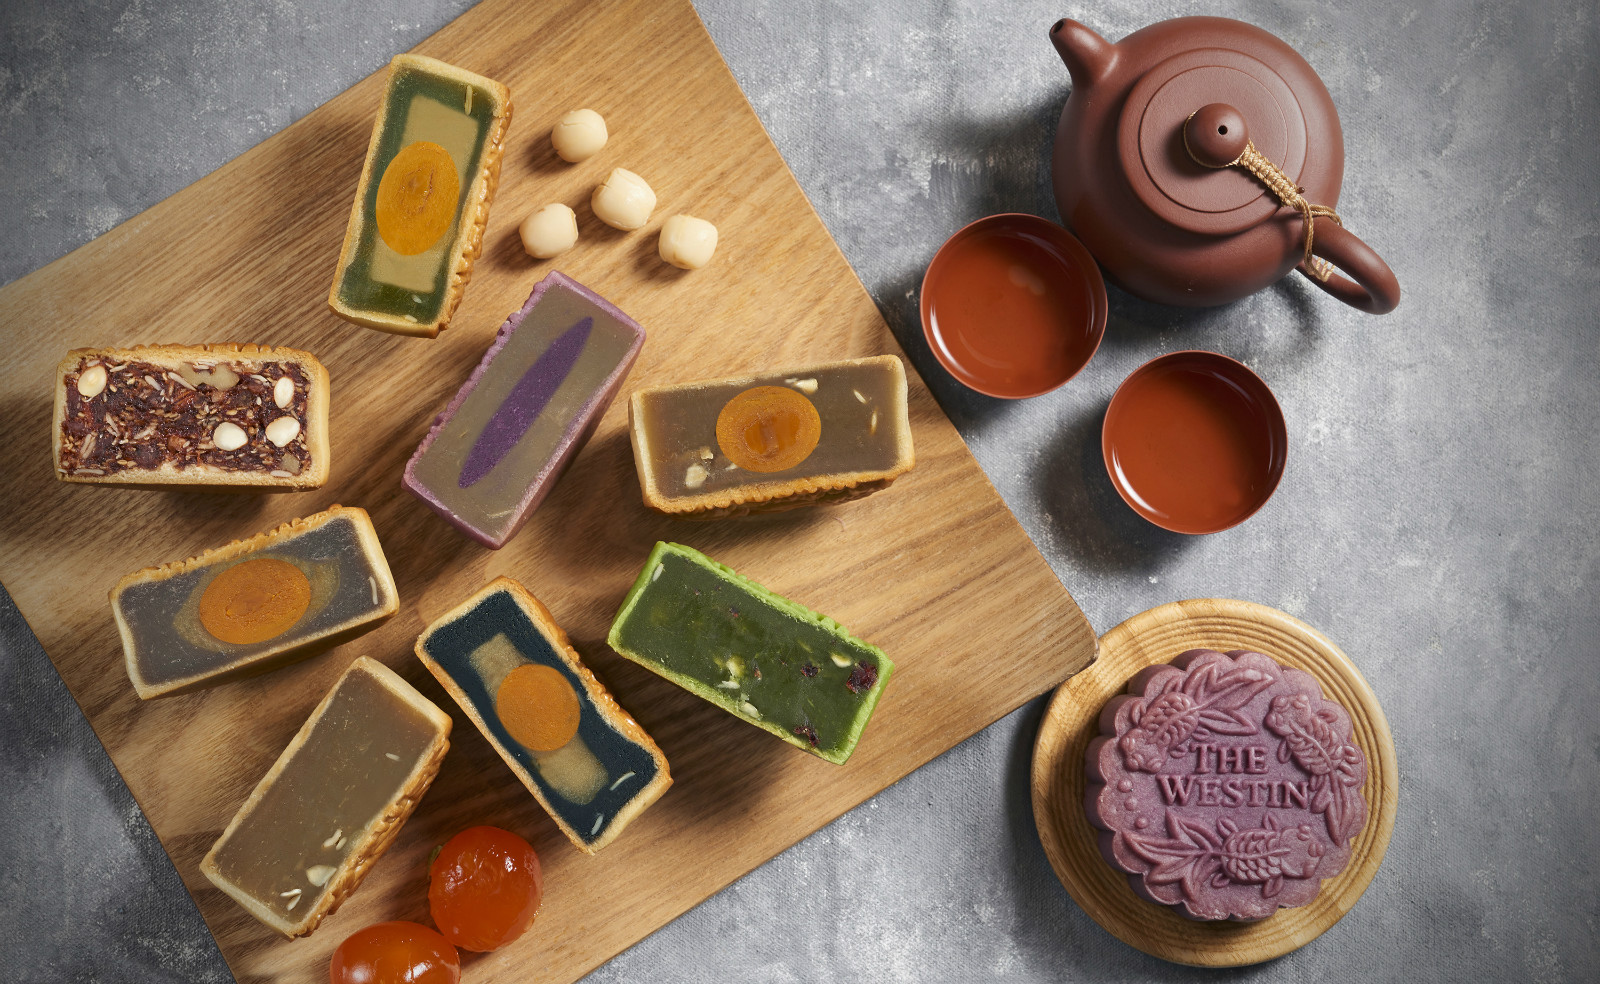 MARRIOTT BONVOY HOTELS USHER IN MID-AUTUMN WITH EXQUISITE MOONCAKES Article cover photo